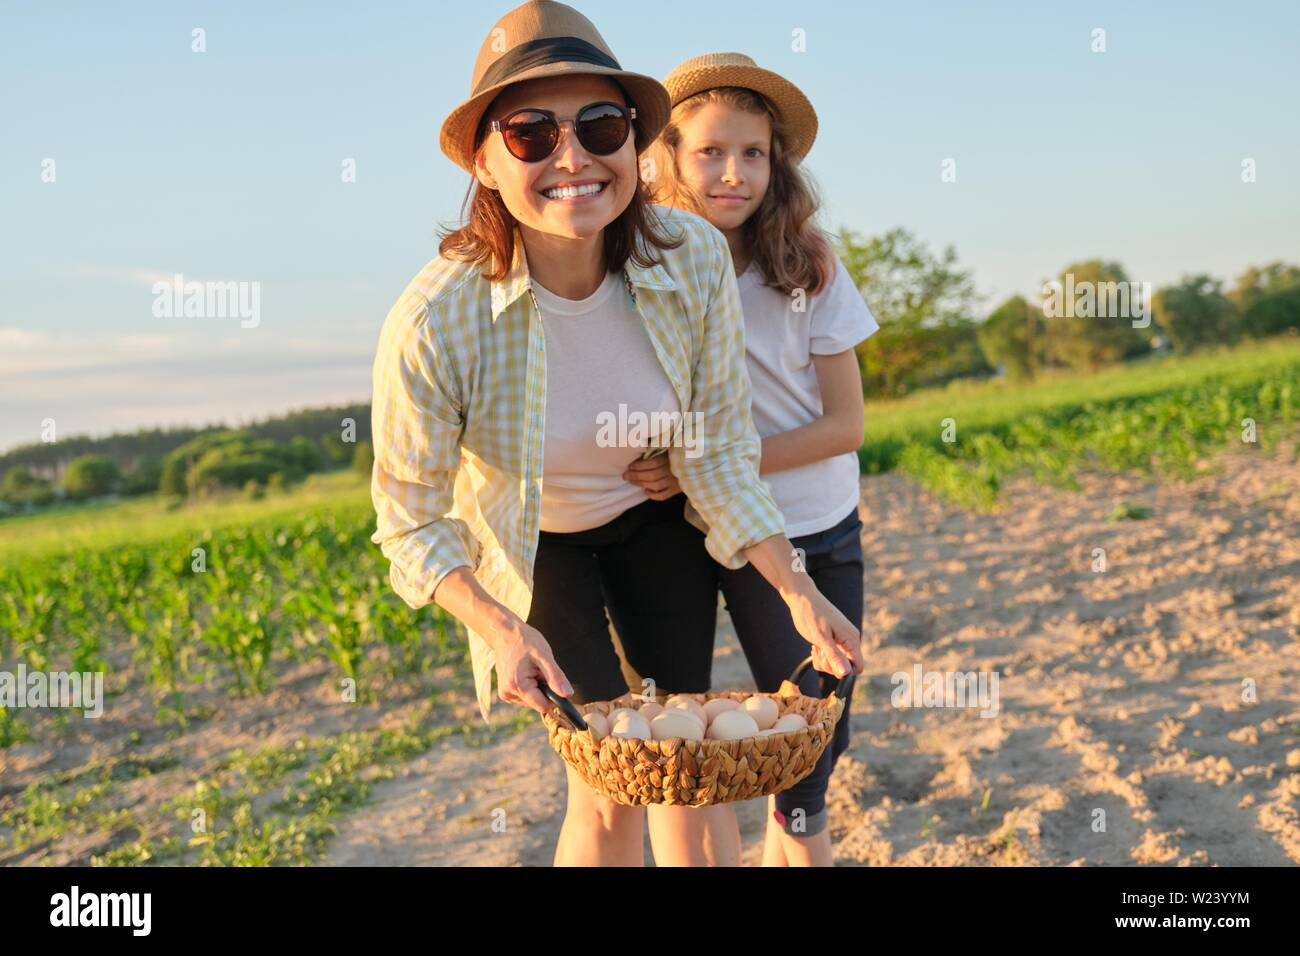 Mother and daughter with a basket of fresh eggs in the garden, golden hour. - Stock Image